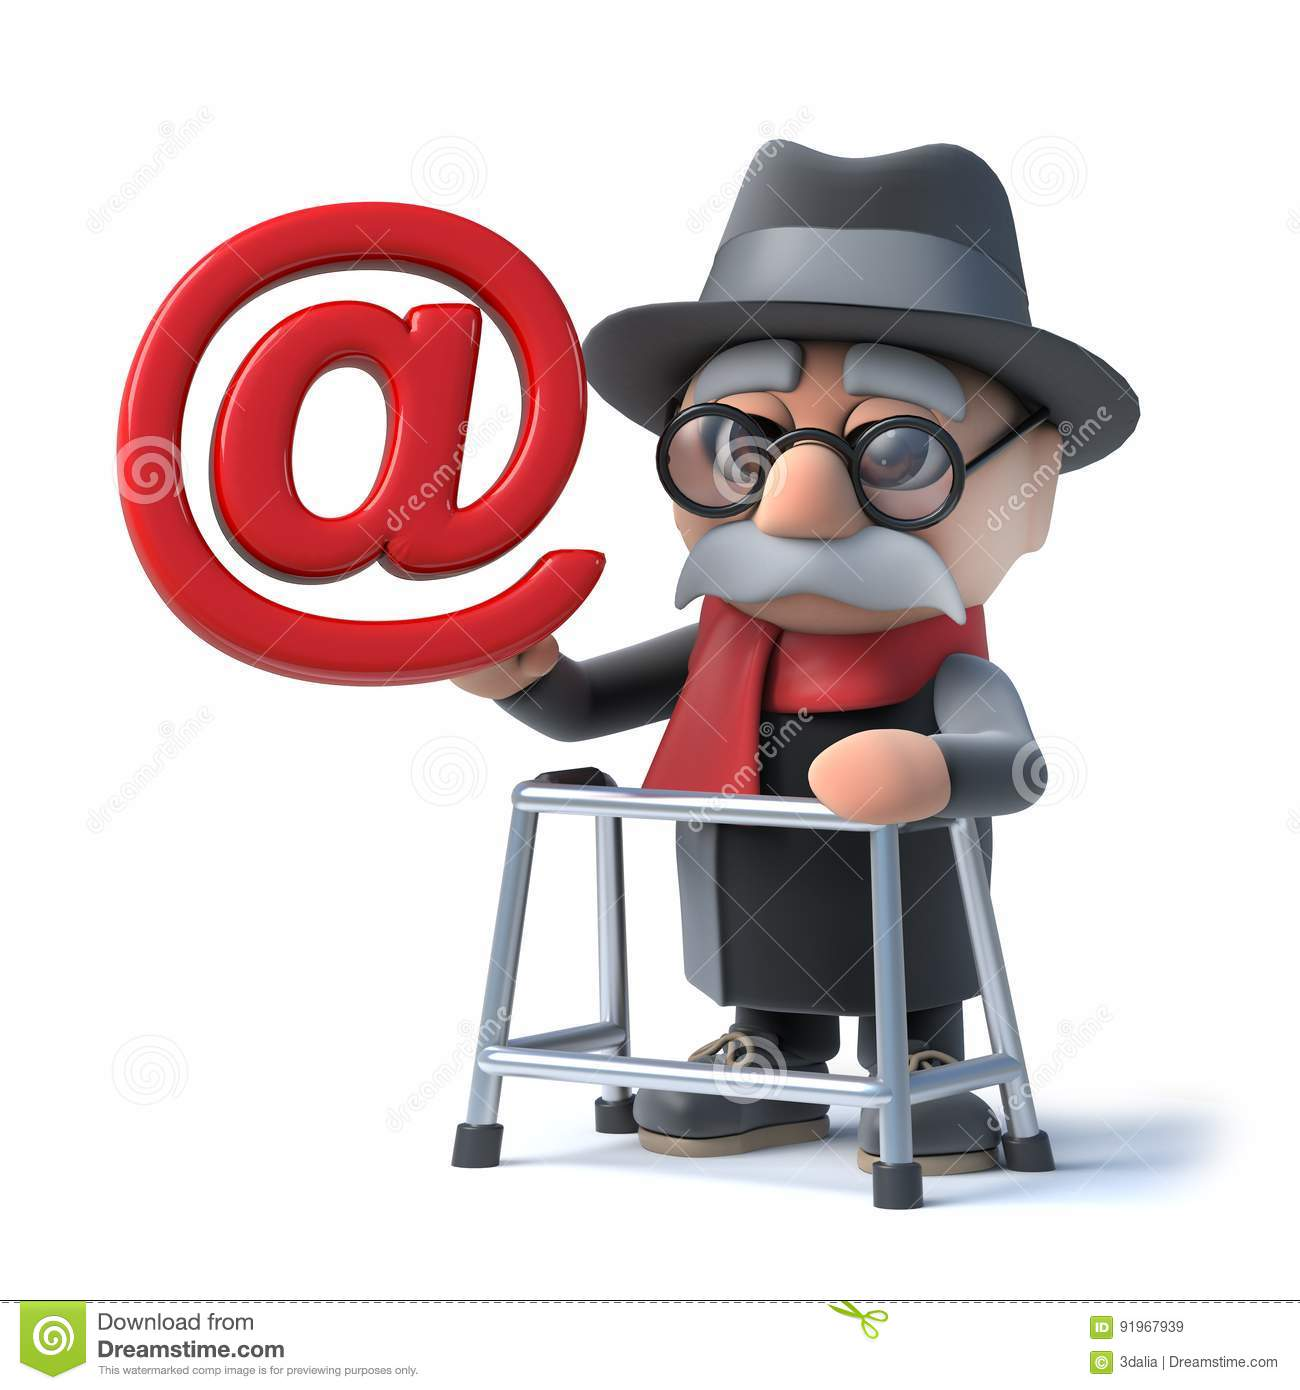 3d Funny cartoon old man with walking frame holding an email address symbol